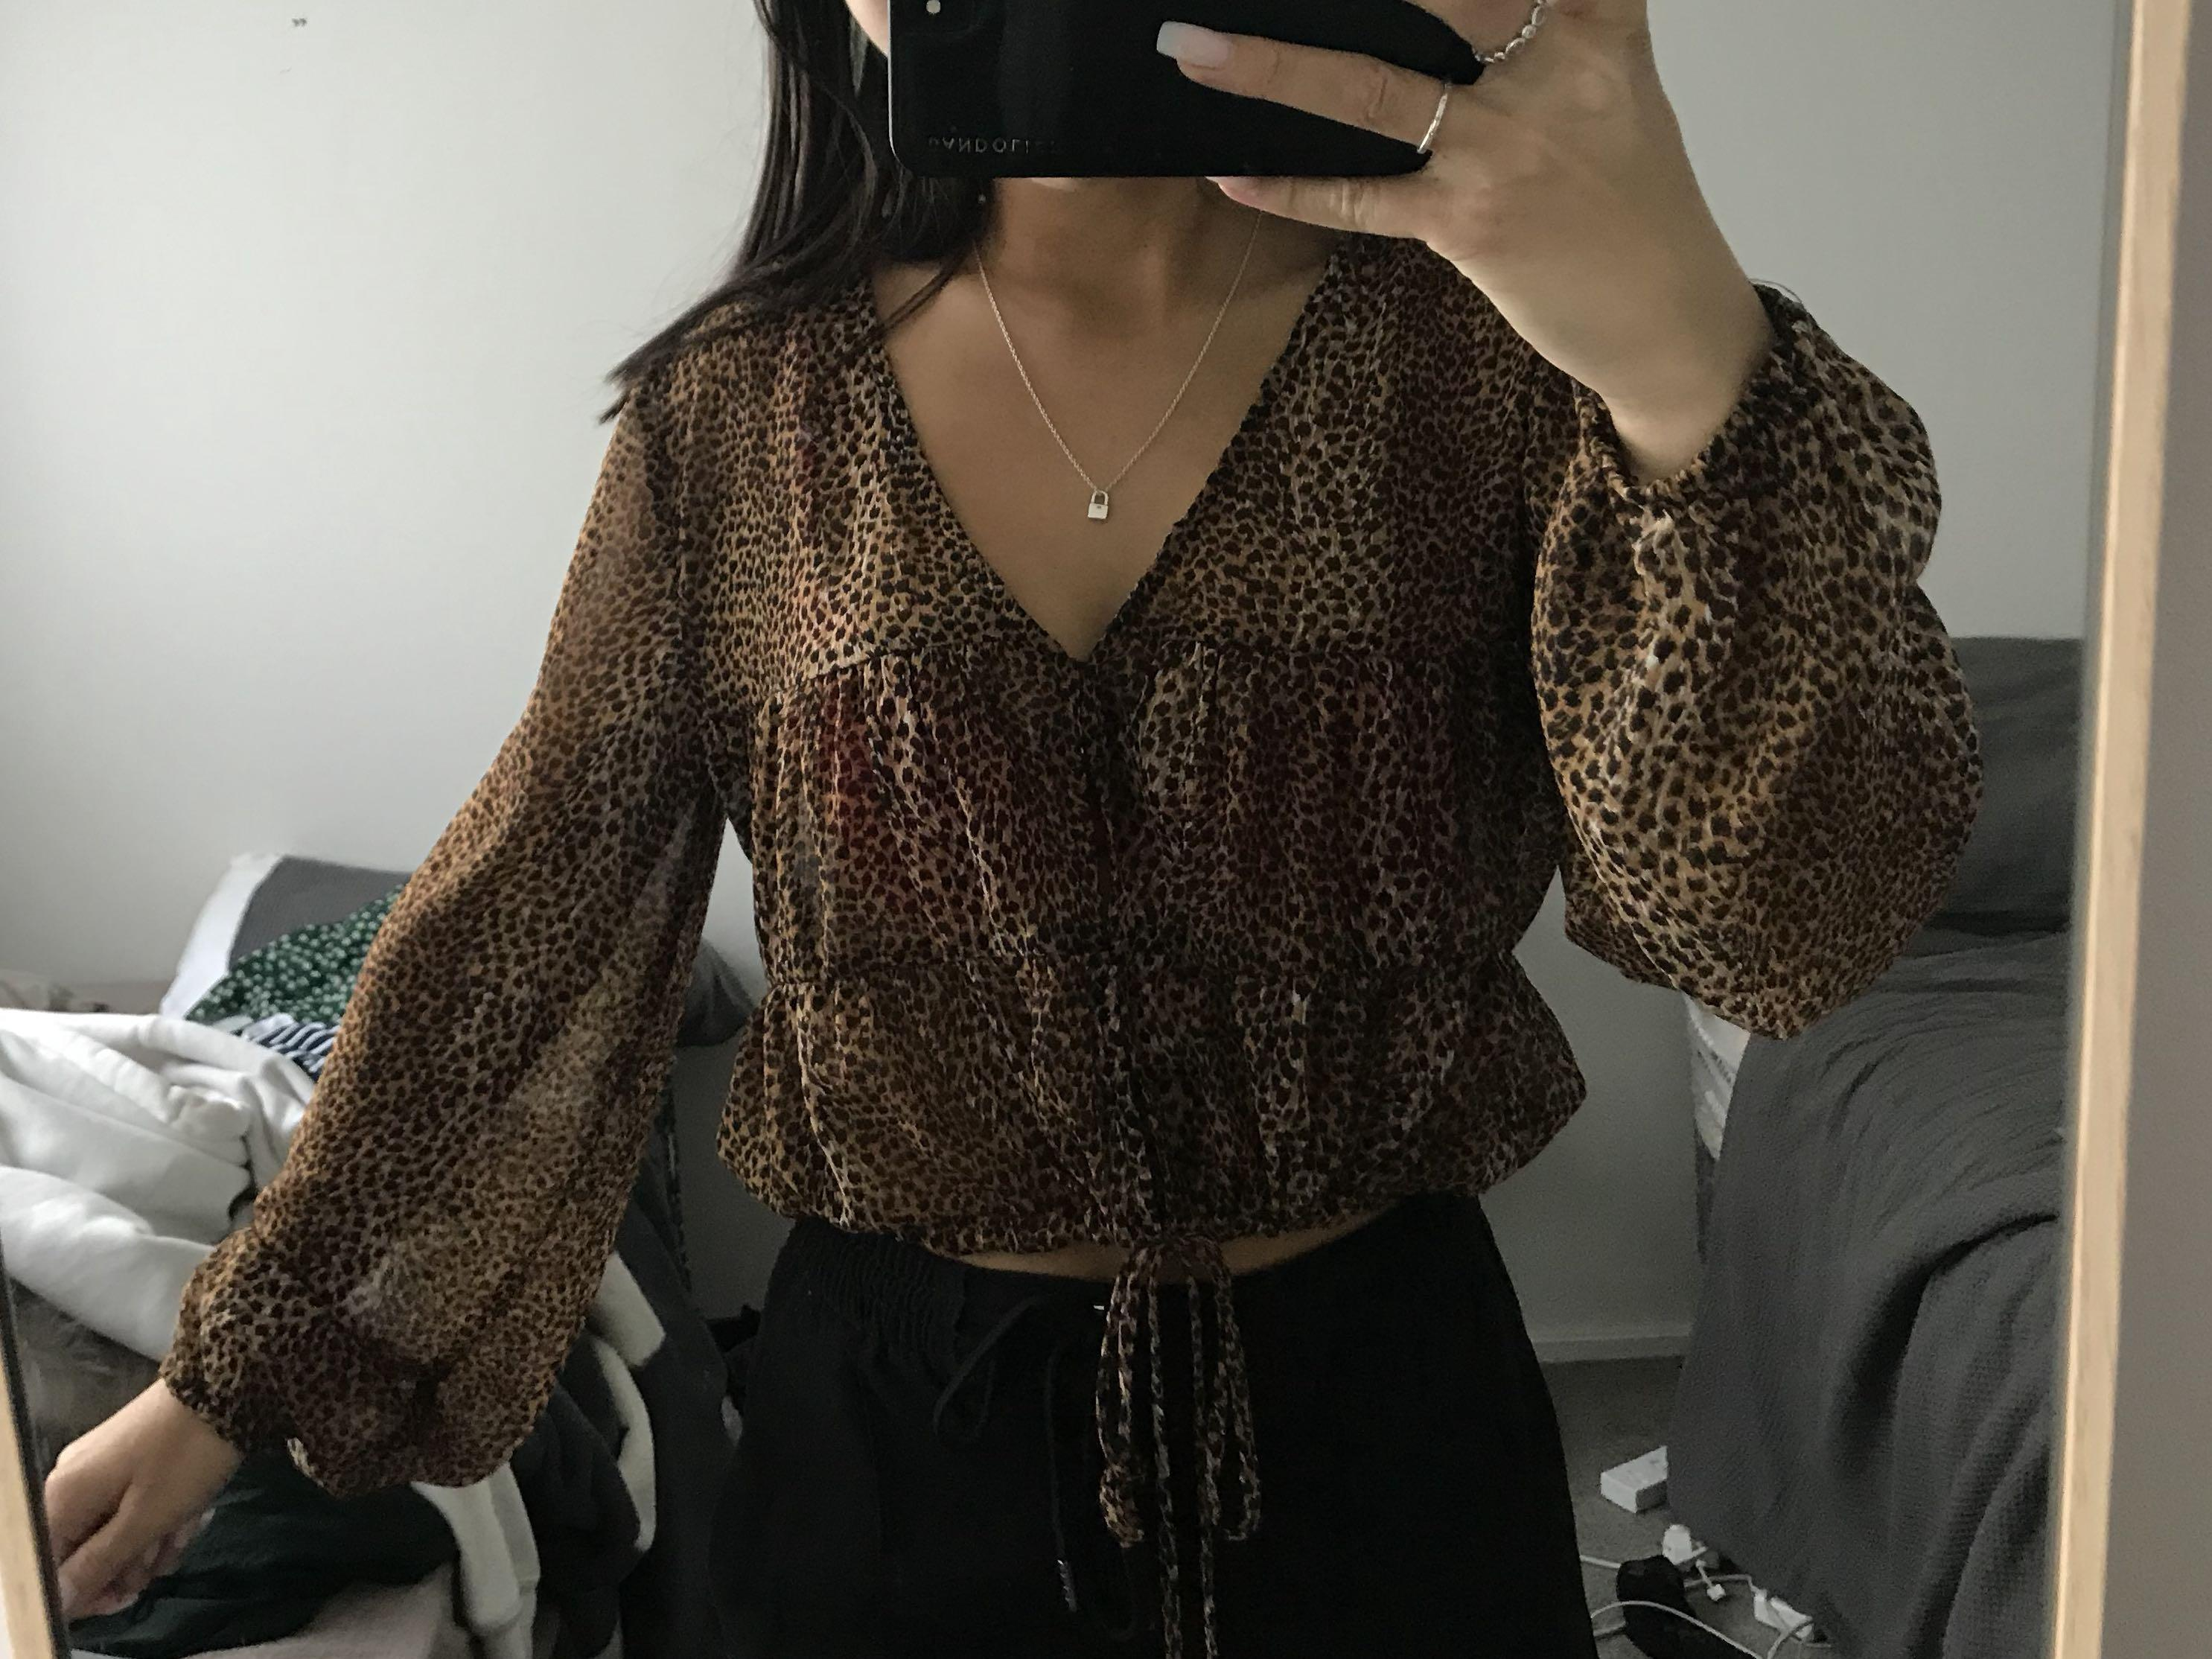 Cheeta sheer top